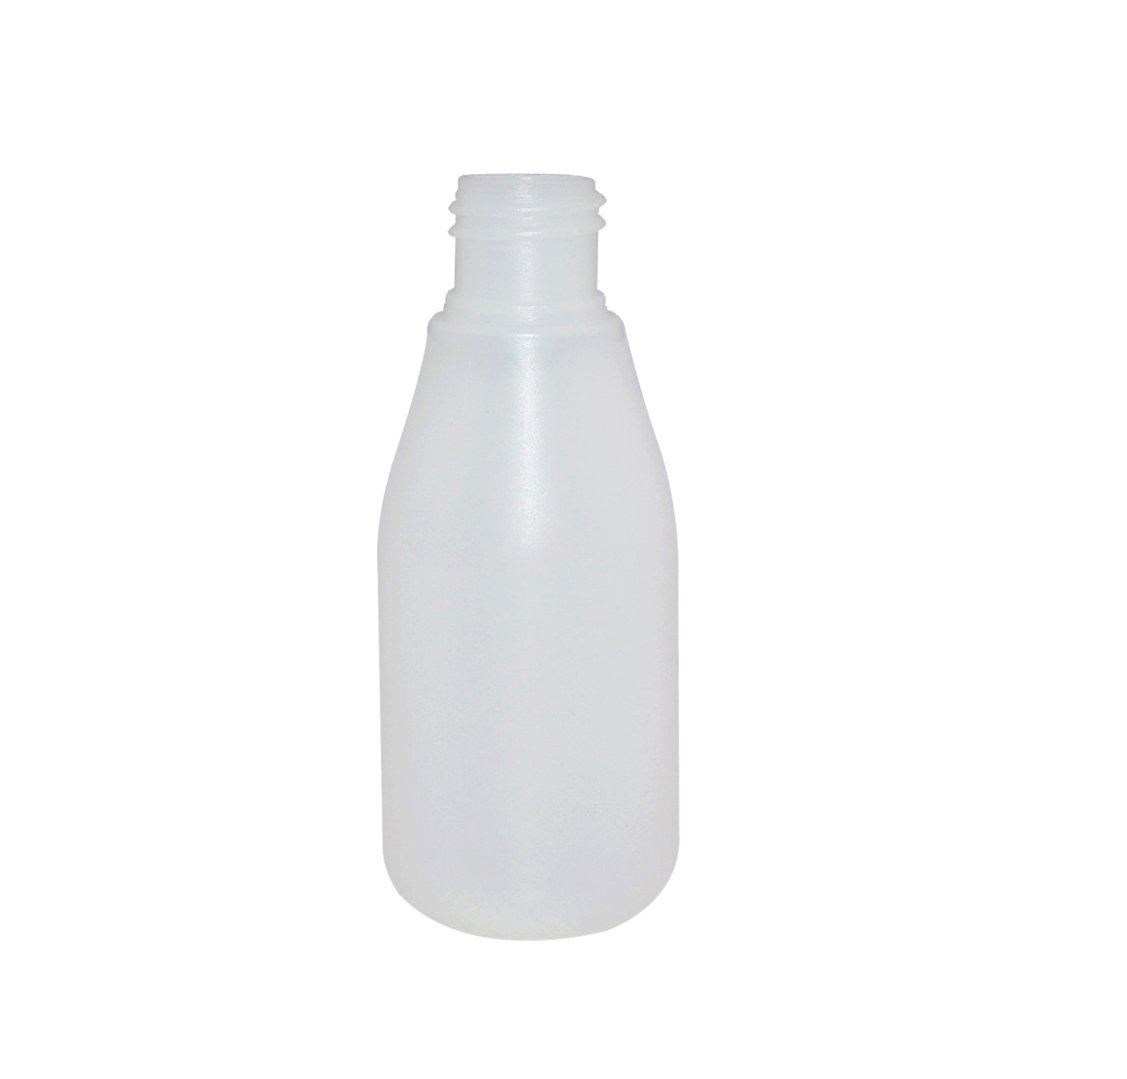 Semi transparent PE plastic bottle with trigger for garden